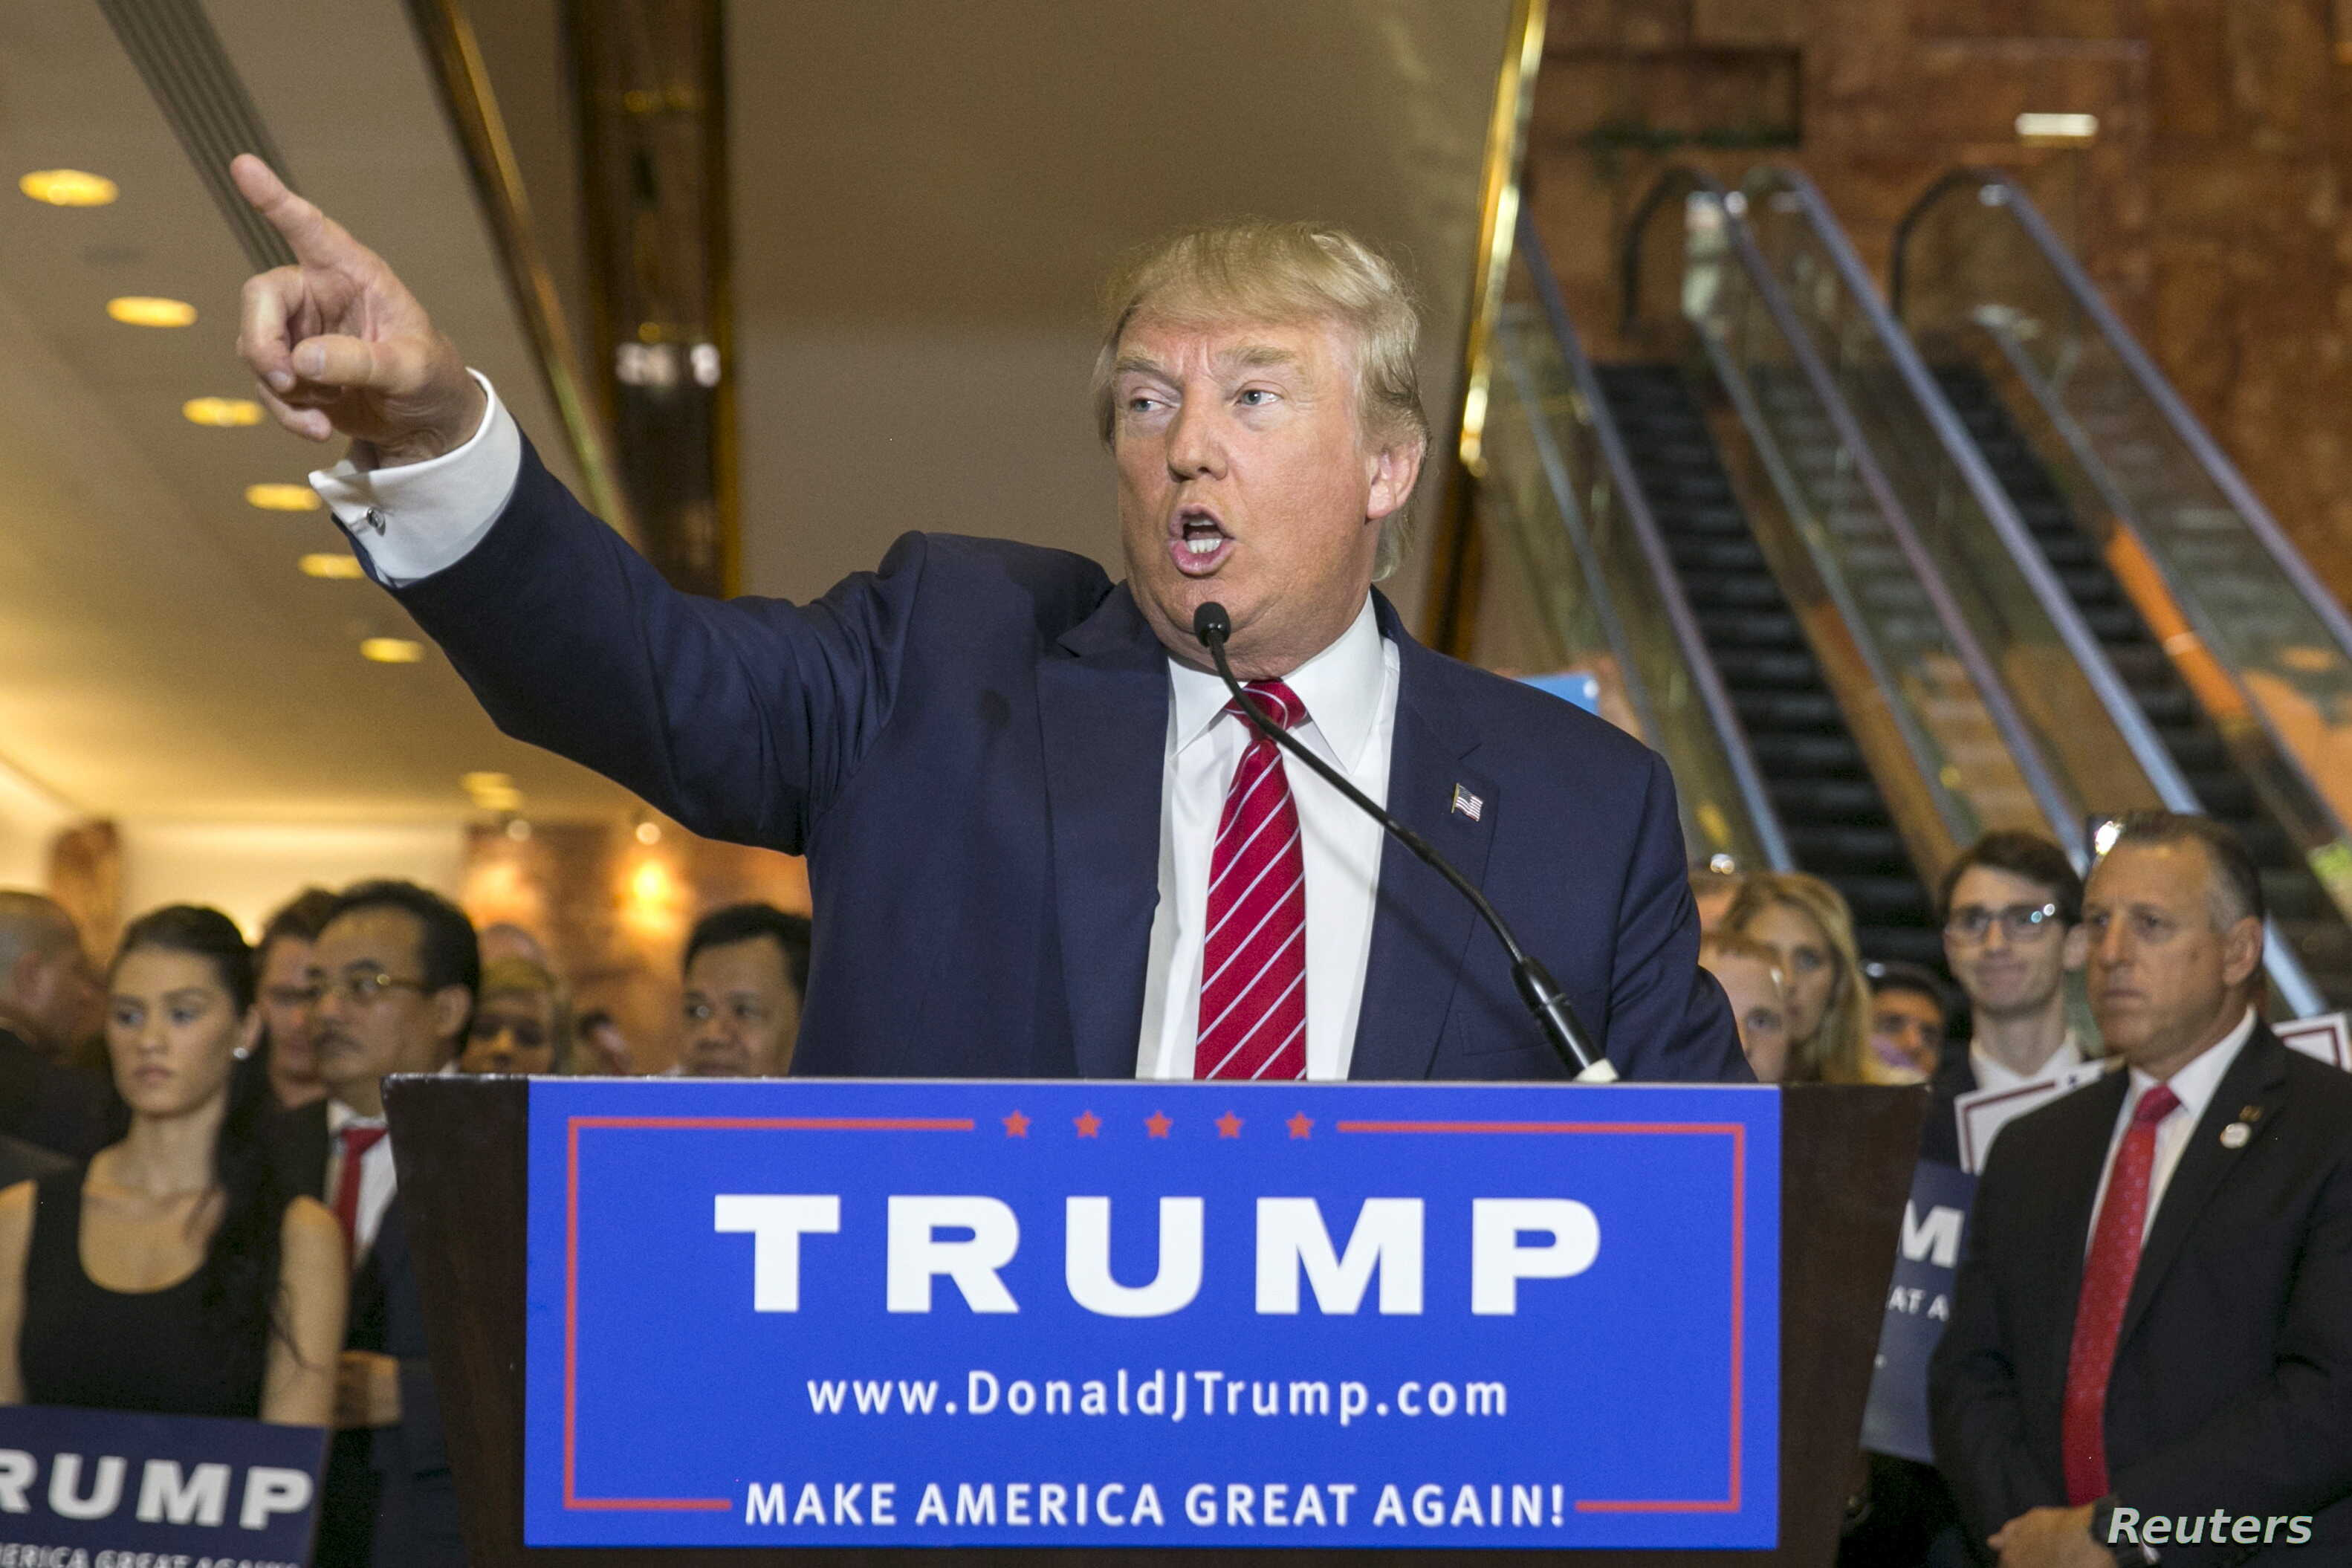 U.S. presidential hopeful Donald Trump speaks during a press availability after signing a pledge with the  Republican National Committee  (RNC) at Trump Tower in Manhattan, New York, Sept. 3, 2015.